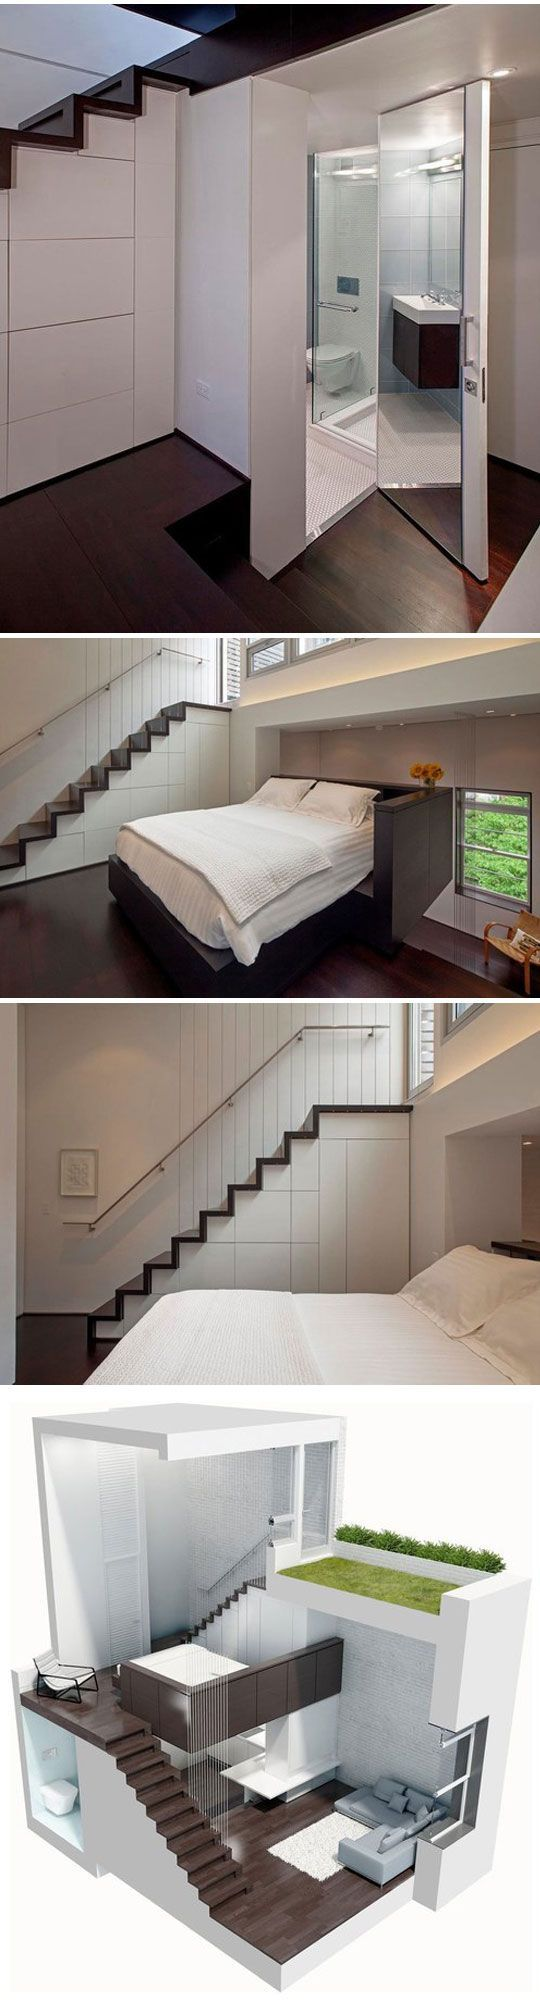 Great Use Of Space And Minimalist Approach This Would Be A